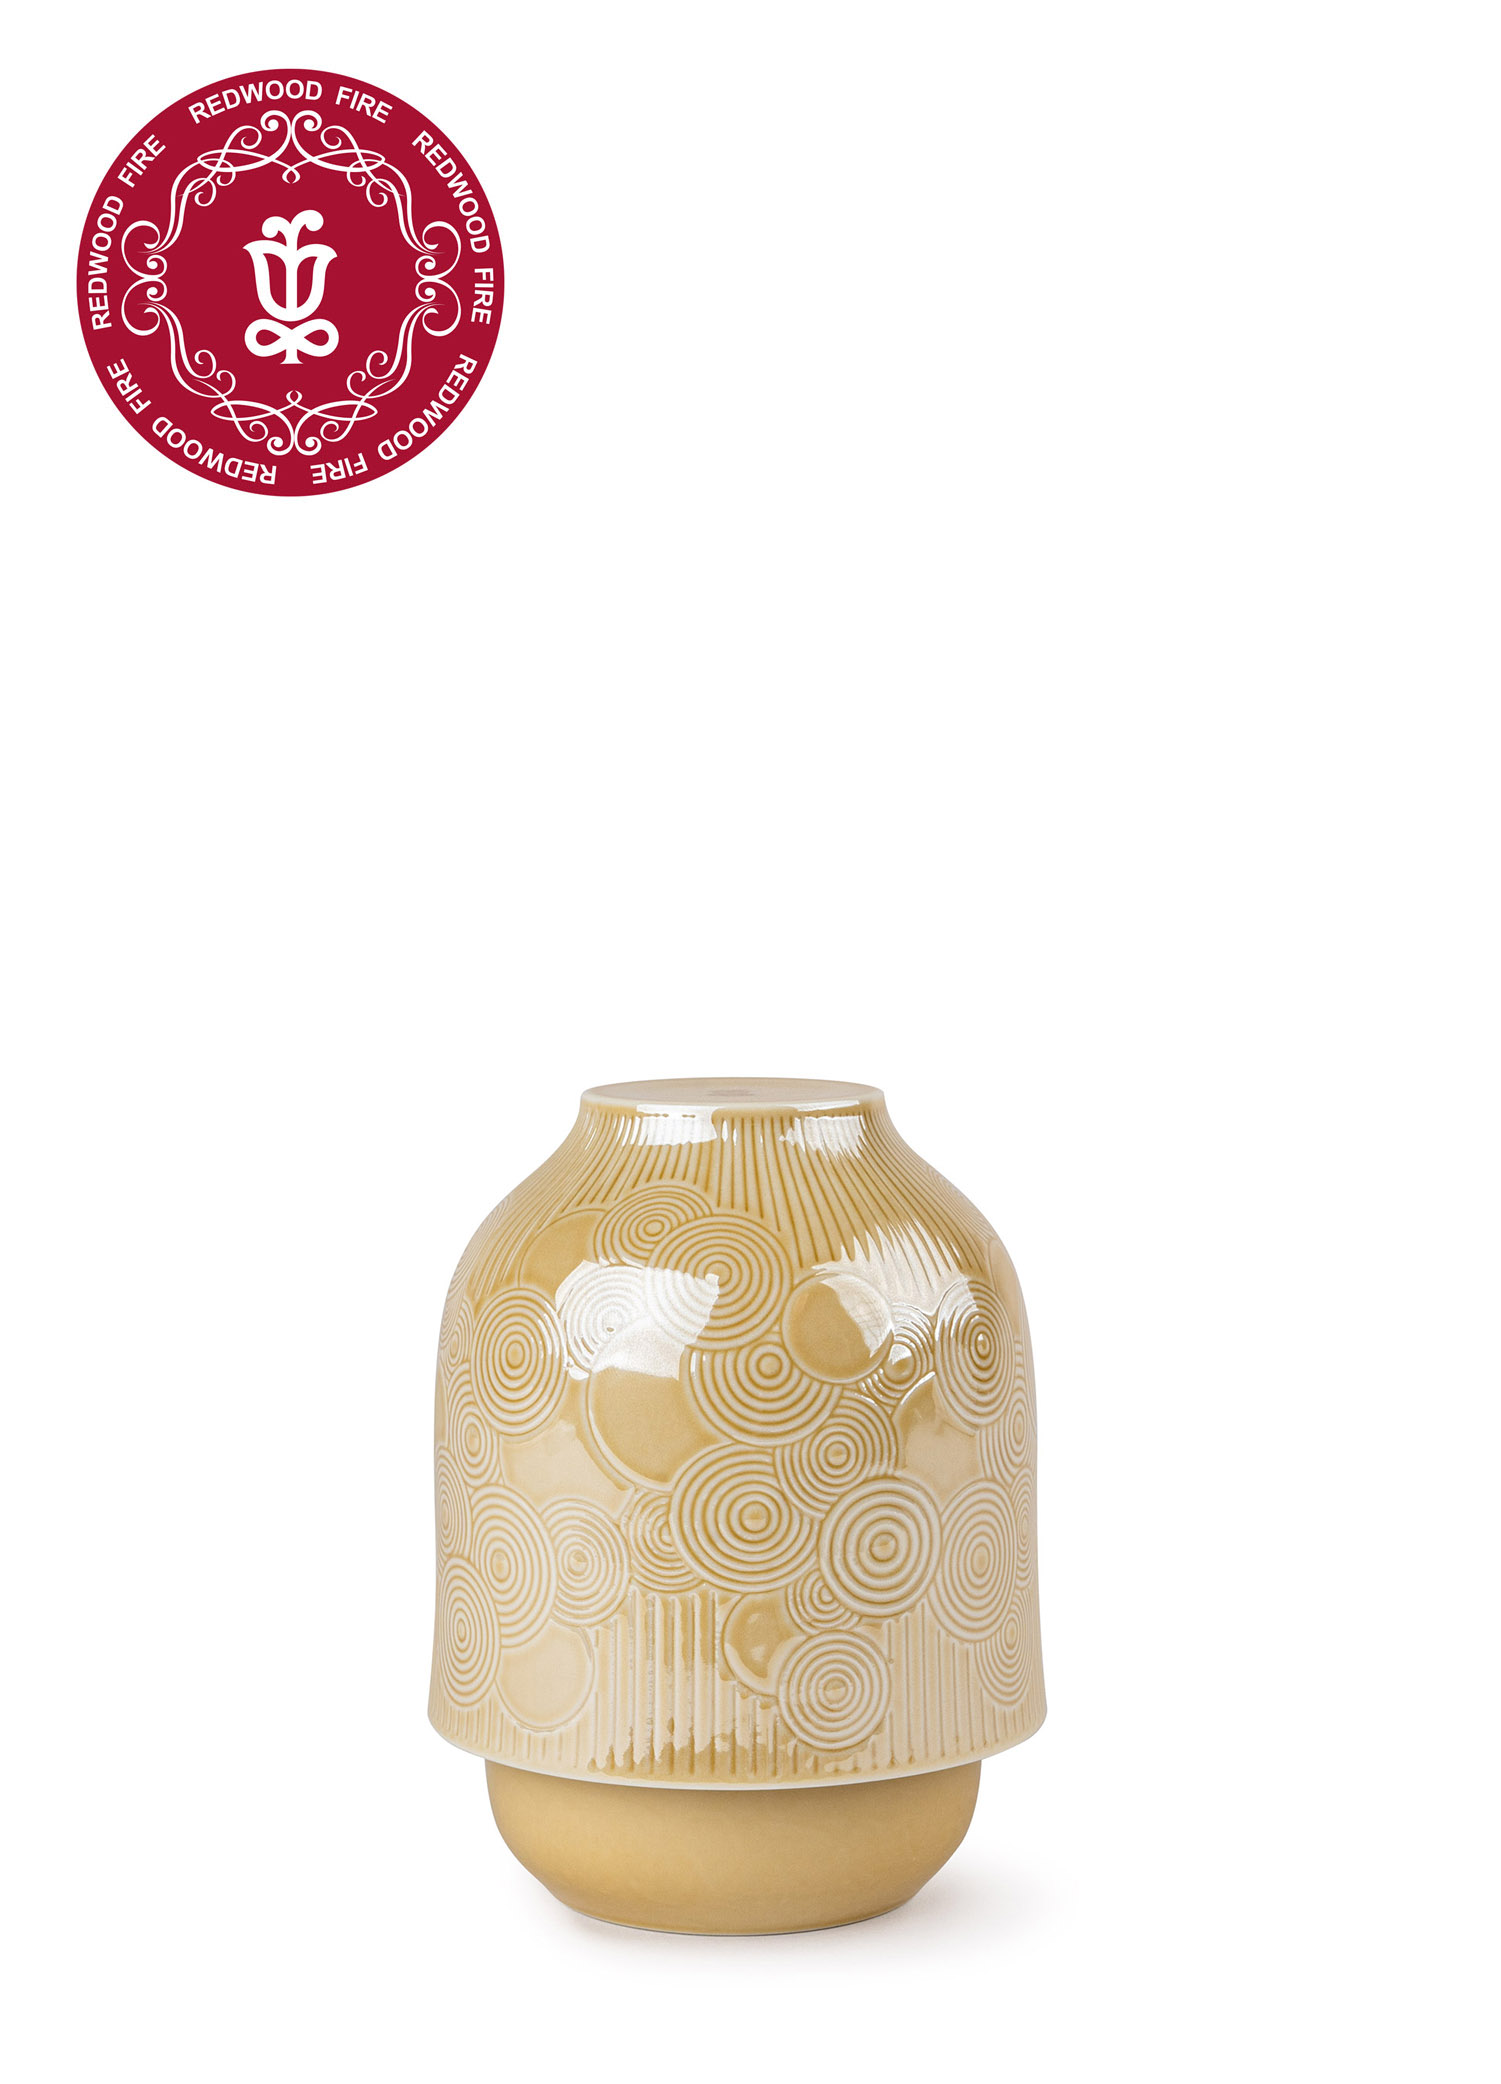 LLADRO® - 'Campanella candle -Redwood fire' 2021 !